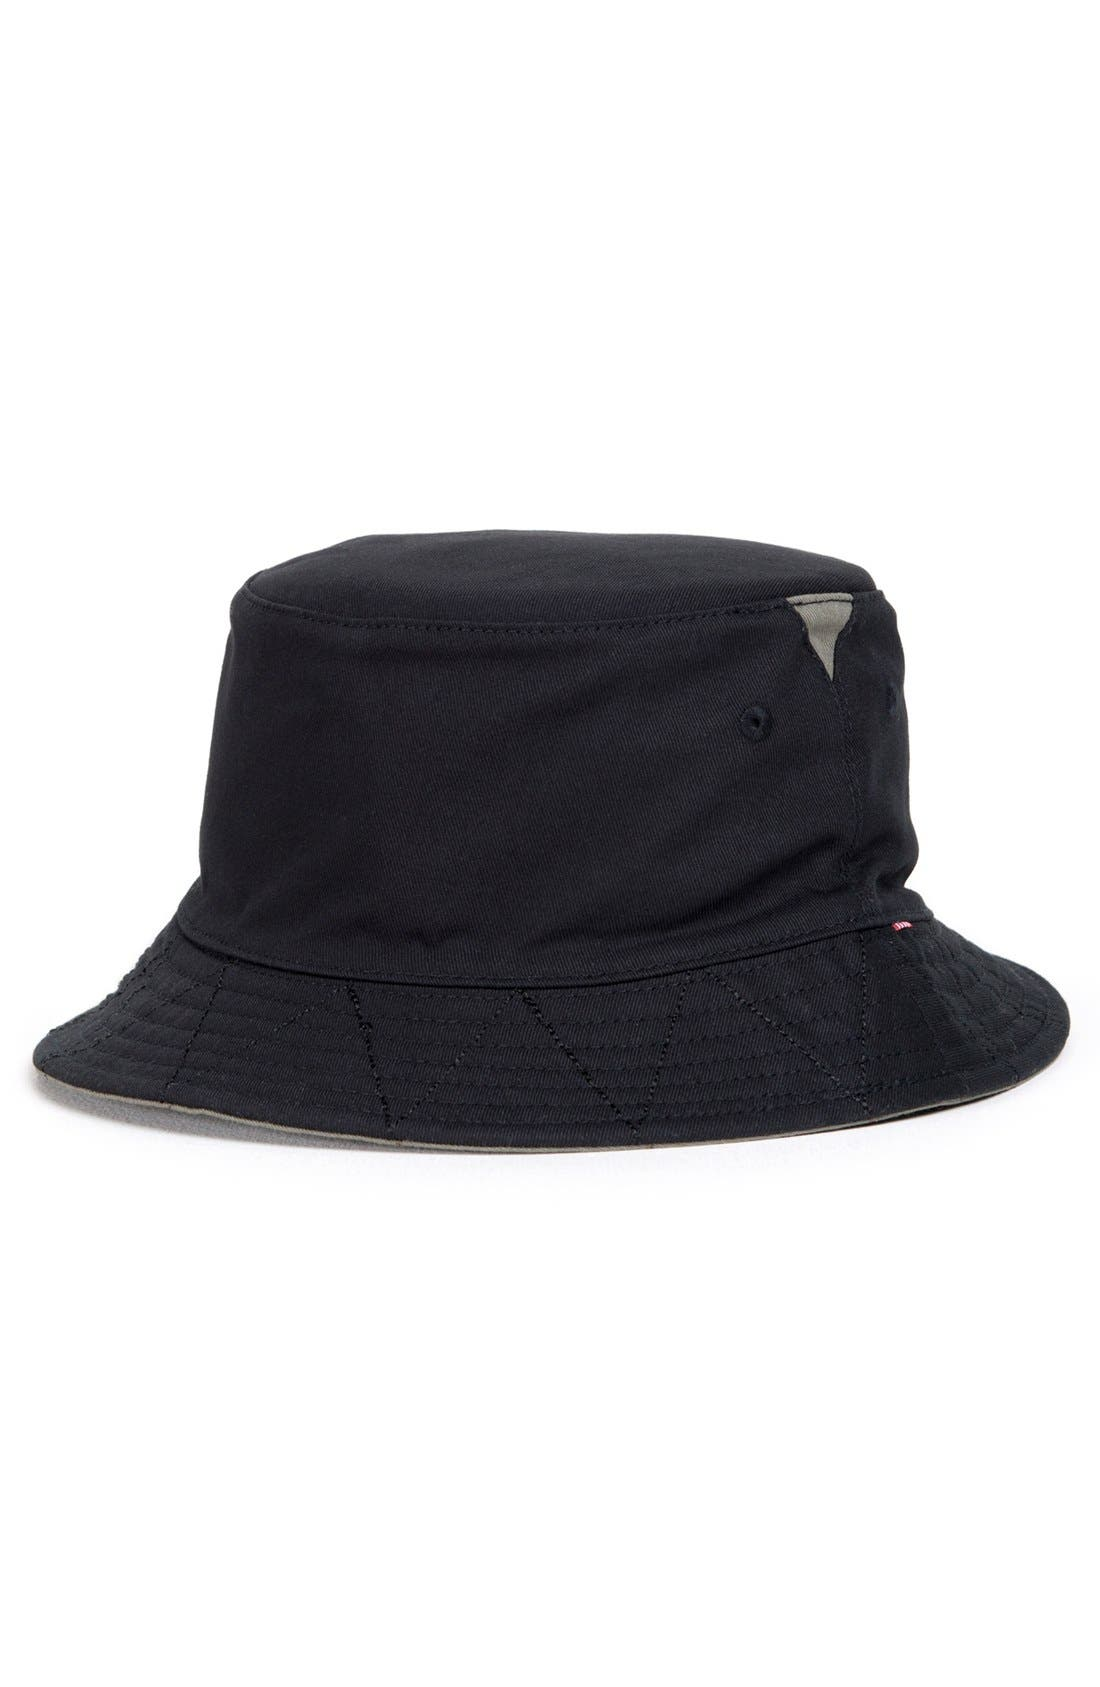 HERSCHEL SUPPLY CO., 'Lake' Bucket Hat, Main thumbnail 1, color, 009